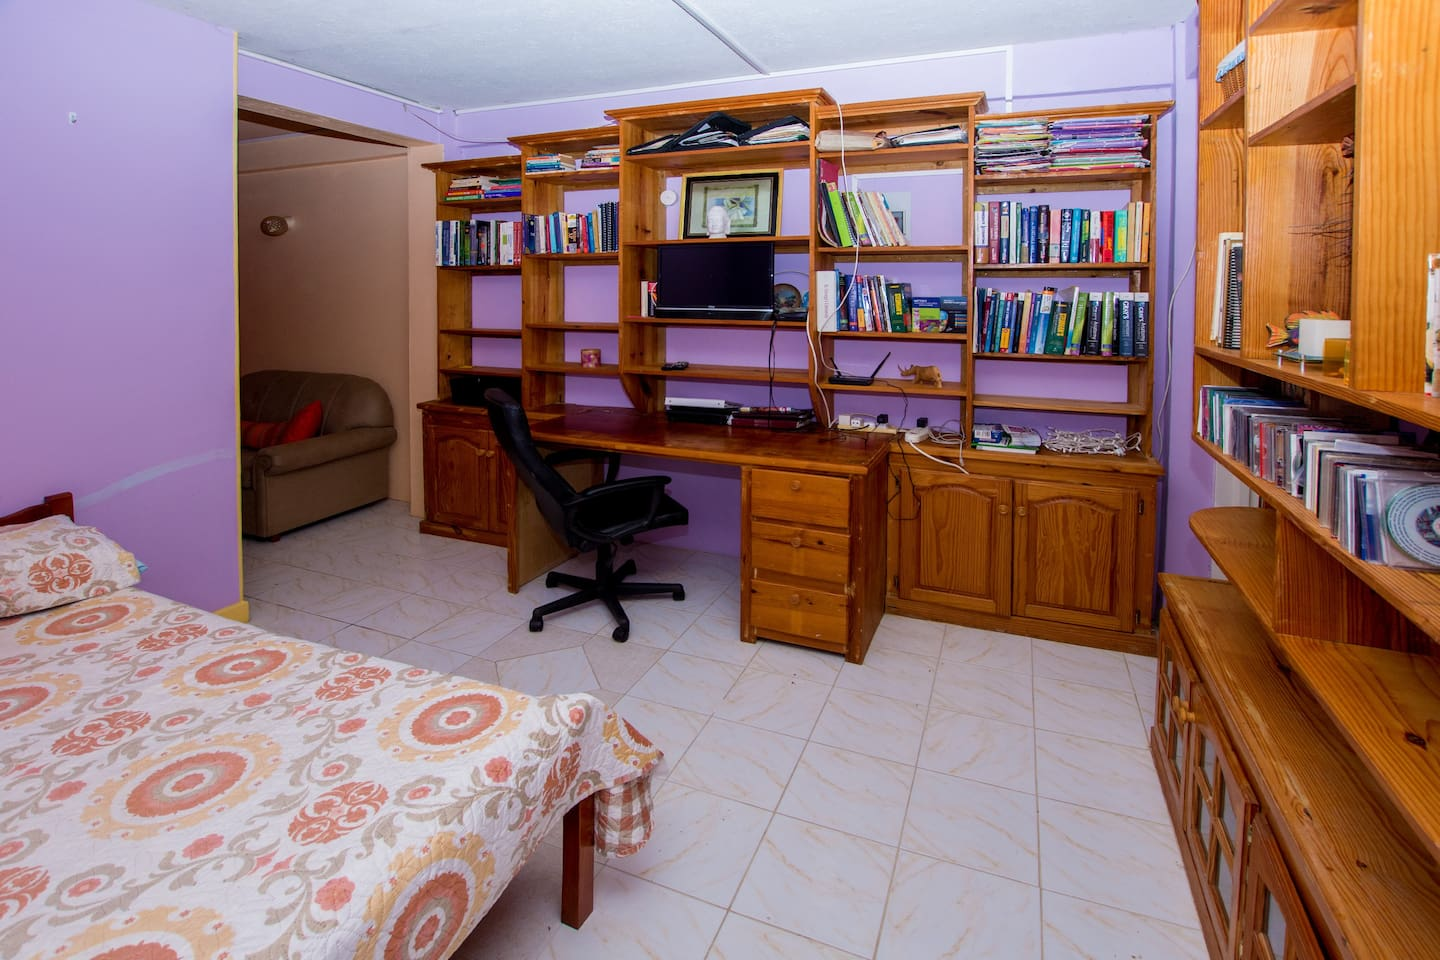 Study space, office desk and chair, bookshelves galore